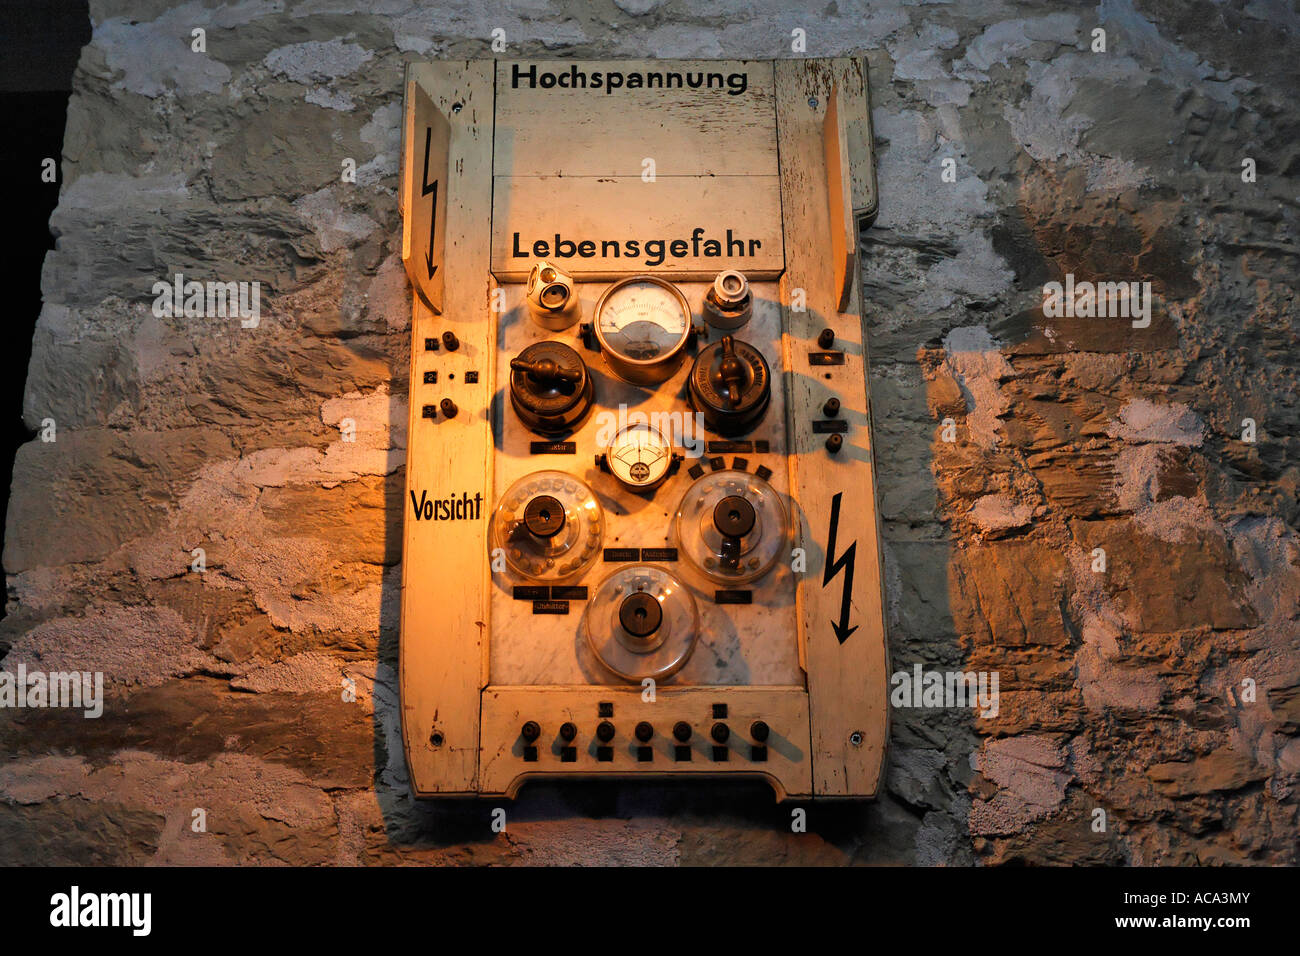 Deutsch Fuse Box Online Schematics Wiring Diagrams Old Car 16 Diagram Images Gsmx Co Electrical